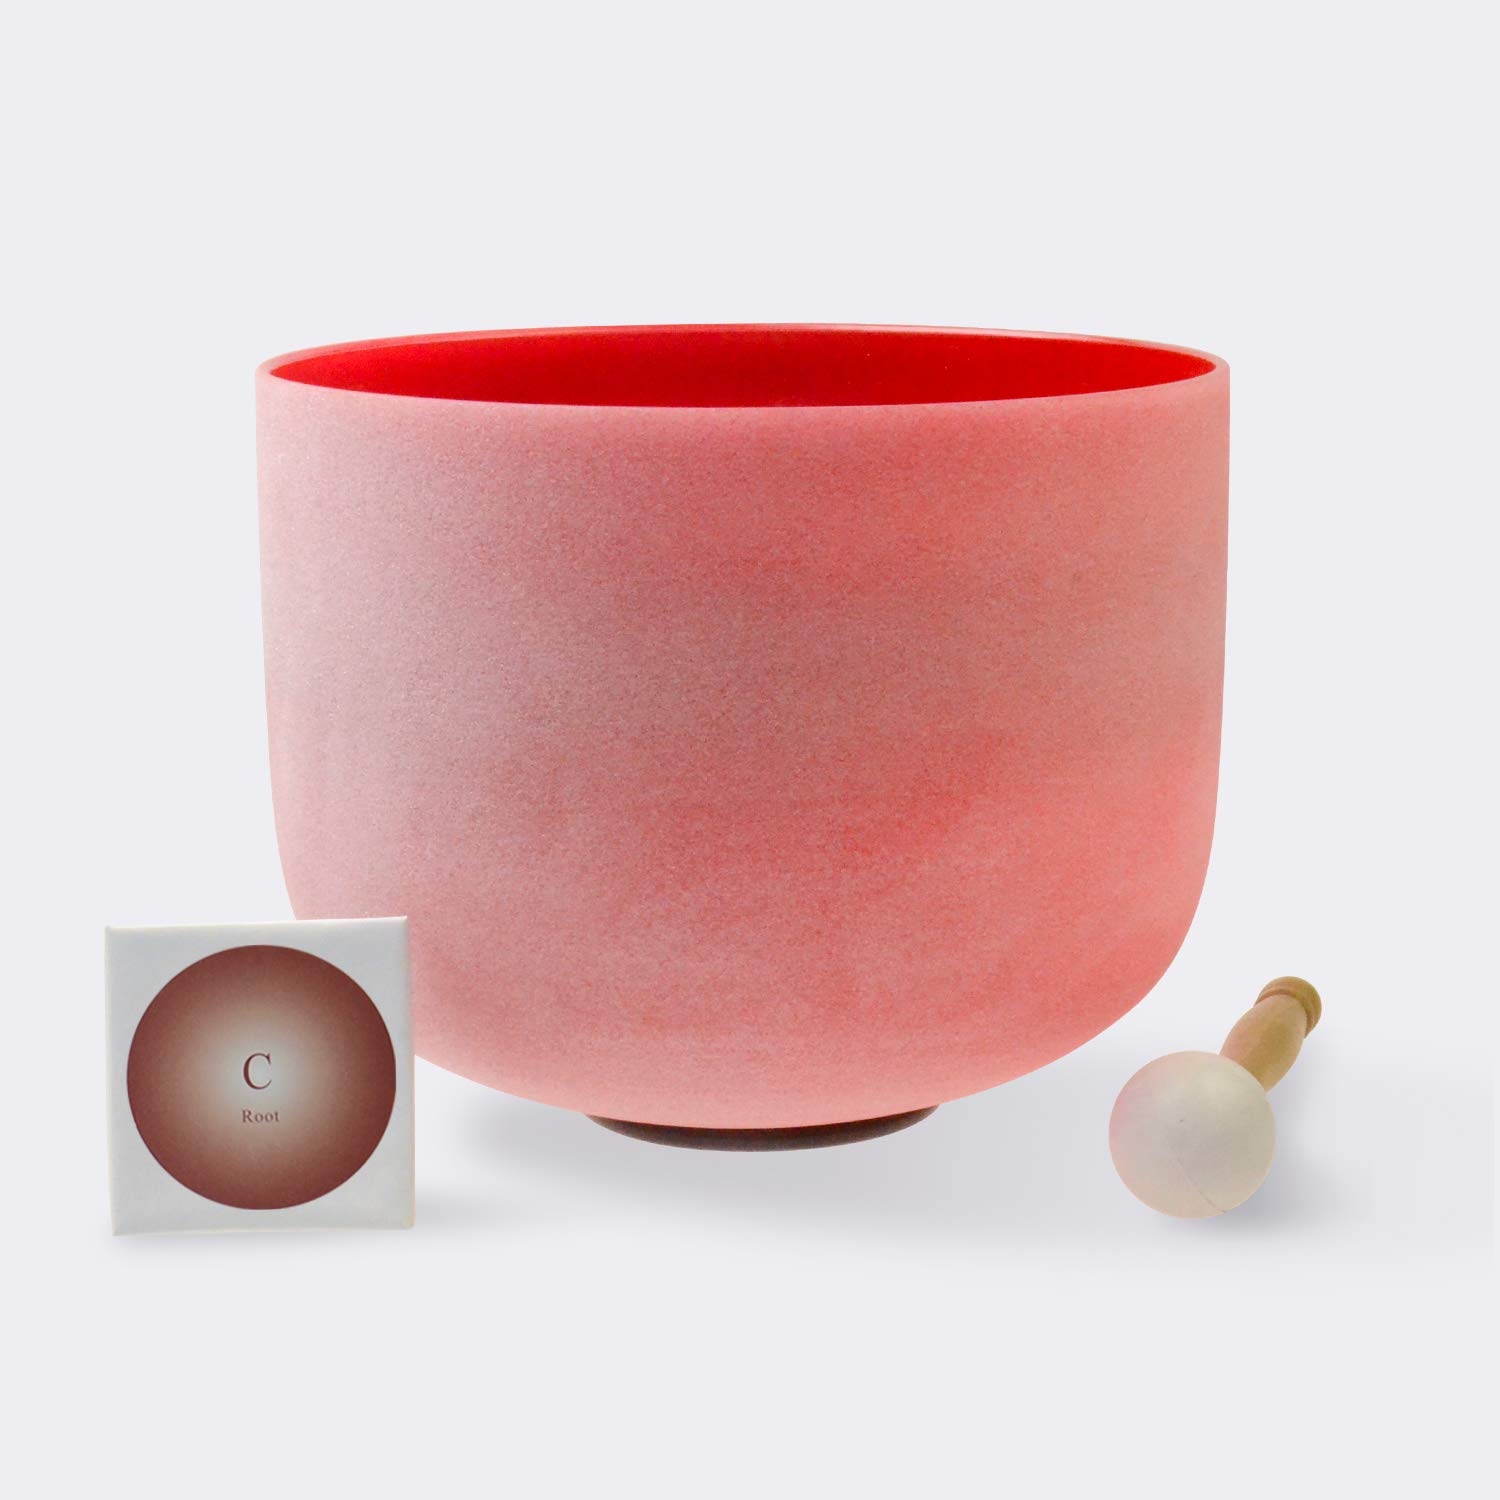 TOPFUND Singing Bowls C Note Crystal Singing Bowl Root Chakra Red Color 10 inch (O ring and Rubber Mallet Included)